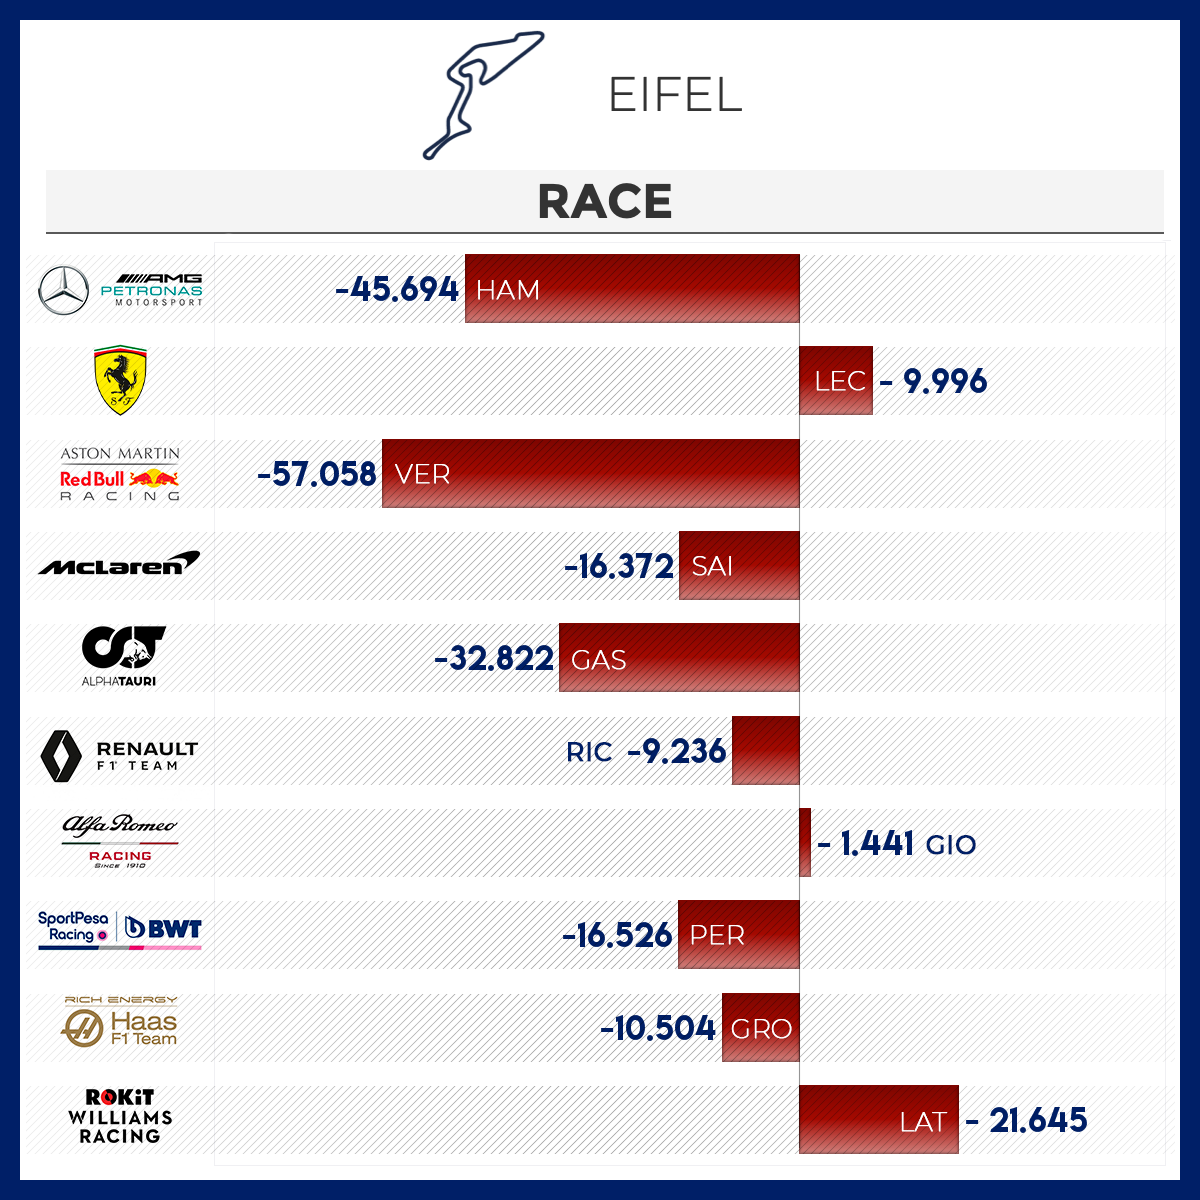 GP_RACE_EIF